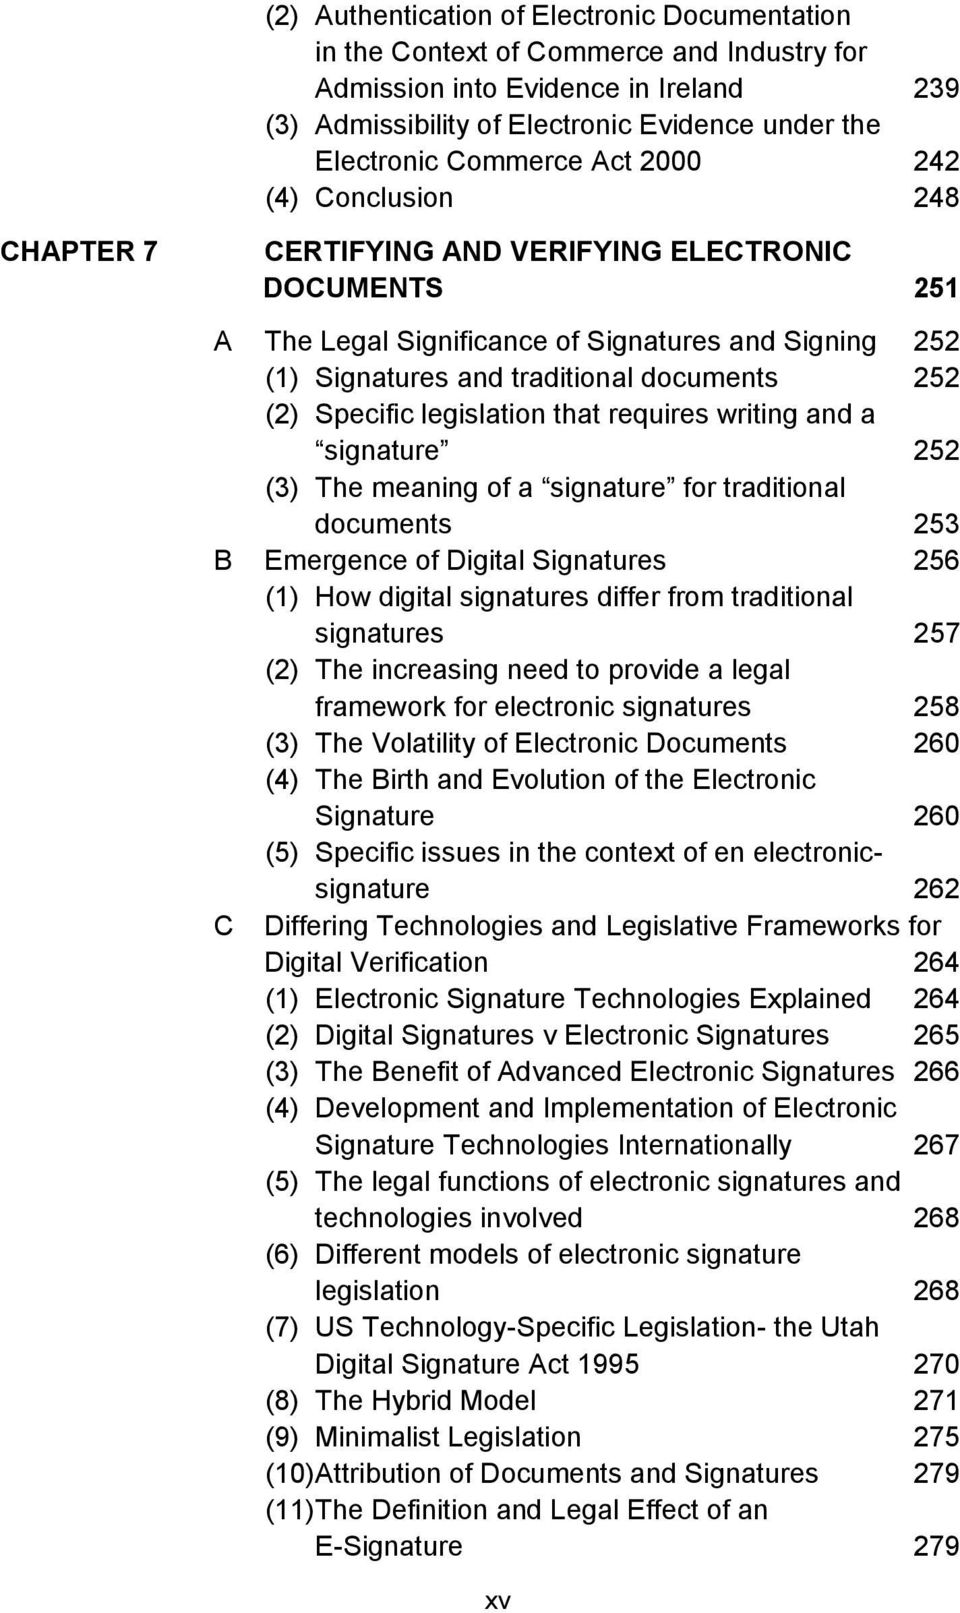 252 (2) Specific legislation that requires writing and a signature 252 (3) The meaning of a signature for traditional documents 253 B Emergence of Digital Signatures 256 (1) How digital signatures